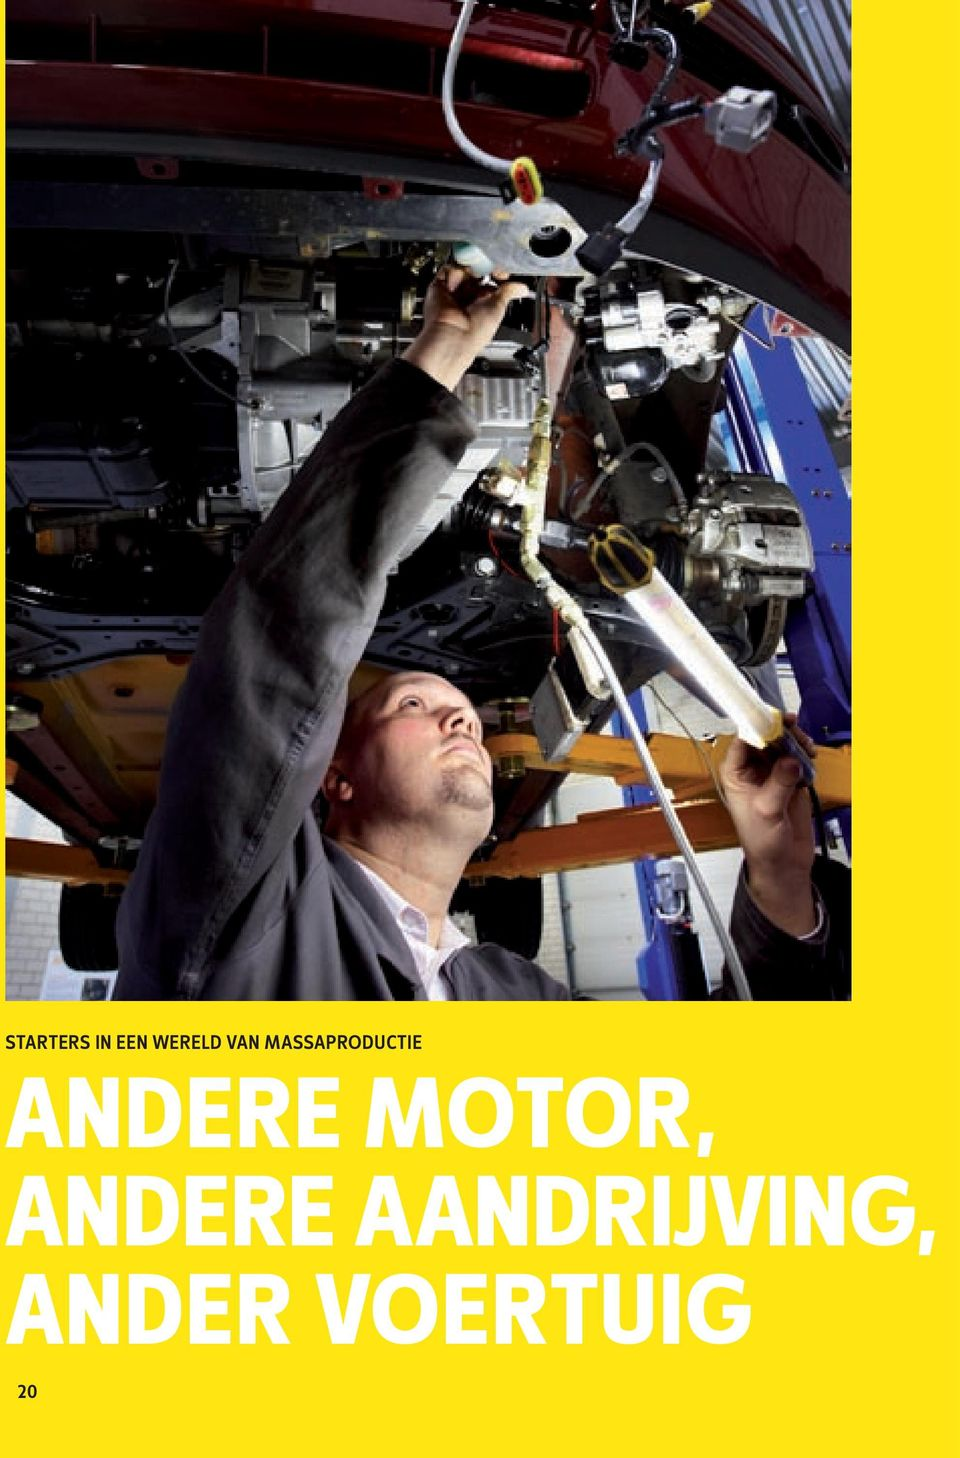 Andere motor, andere